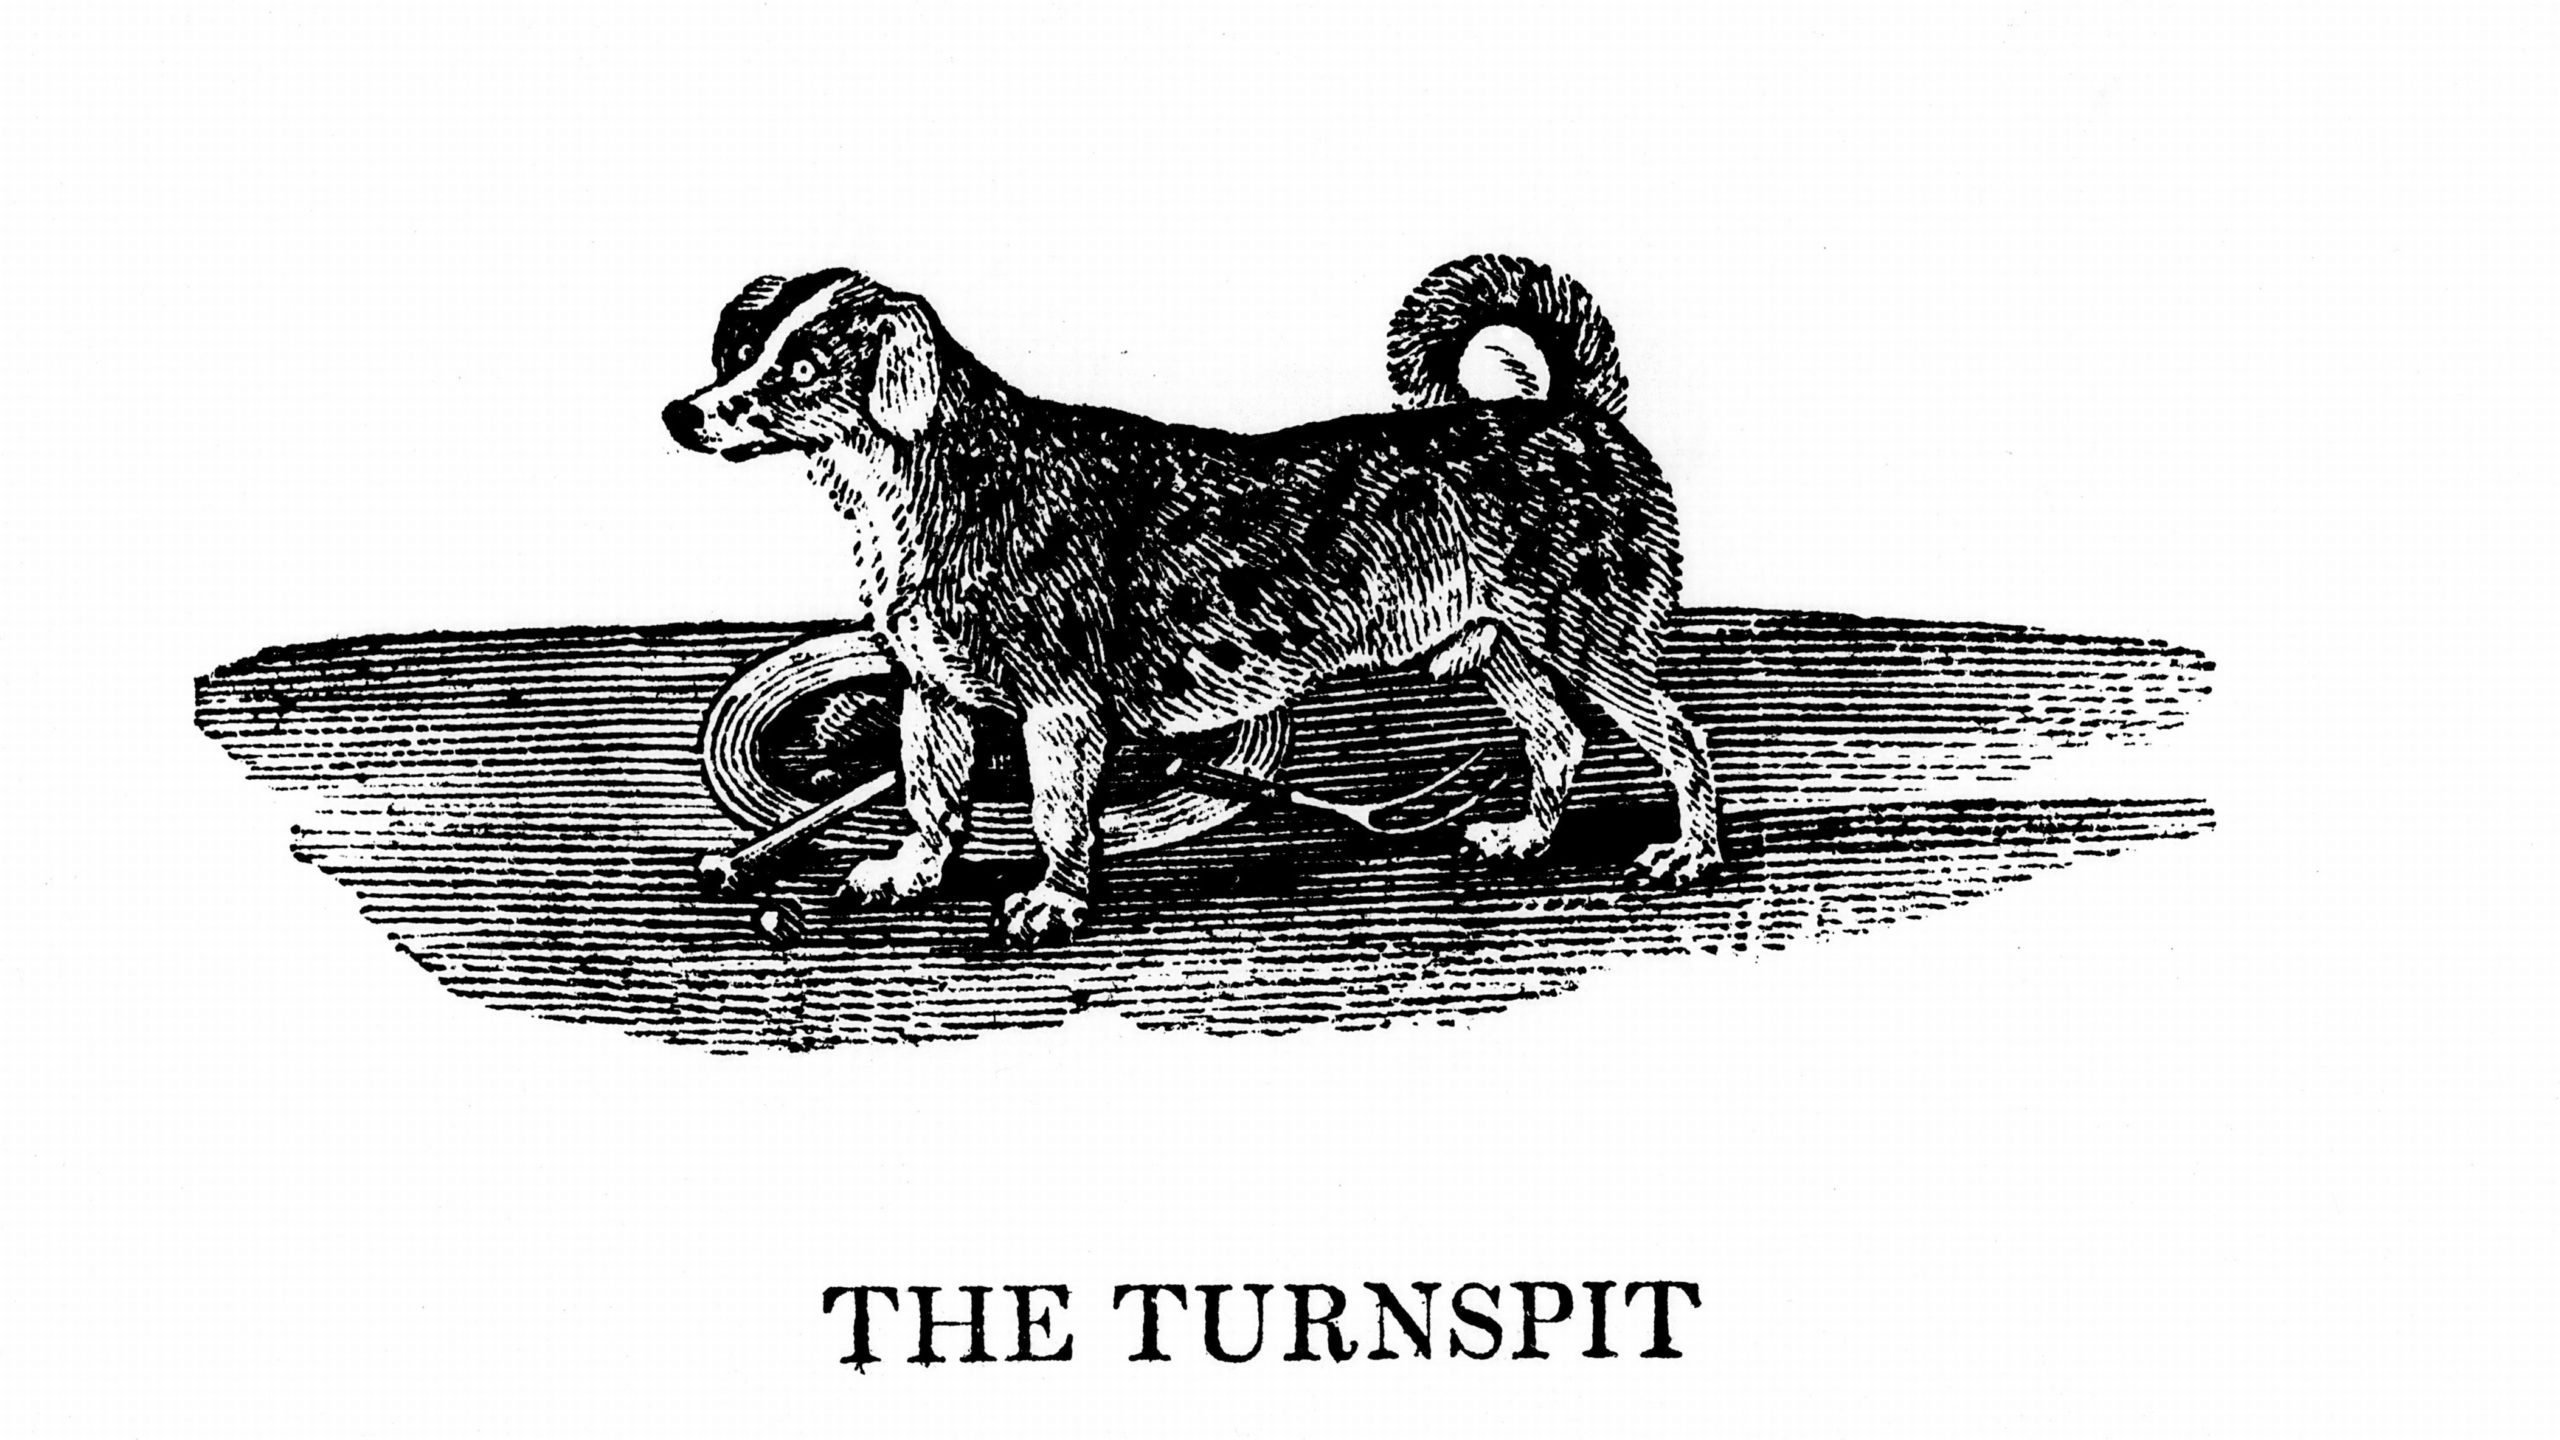 Turnspit dog. These short-legged dogs were bred especially to work in wheels turning cooking spits. By 1800 the breed had almost disappeared. From A General History of Quadrupeds by Thomas Bewick (Newcastle upon Tyne, 1790). Wood engraving. ...